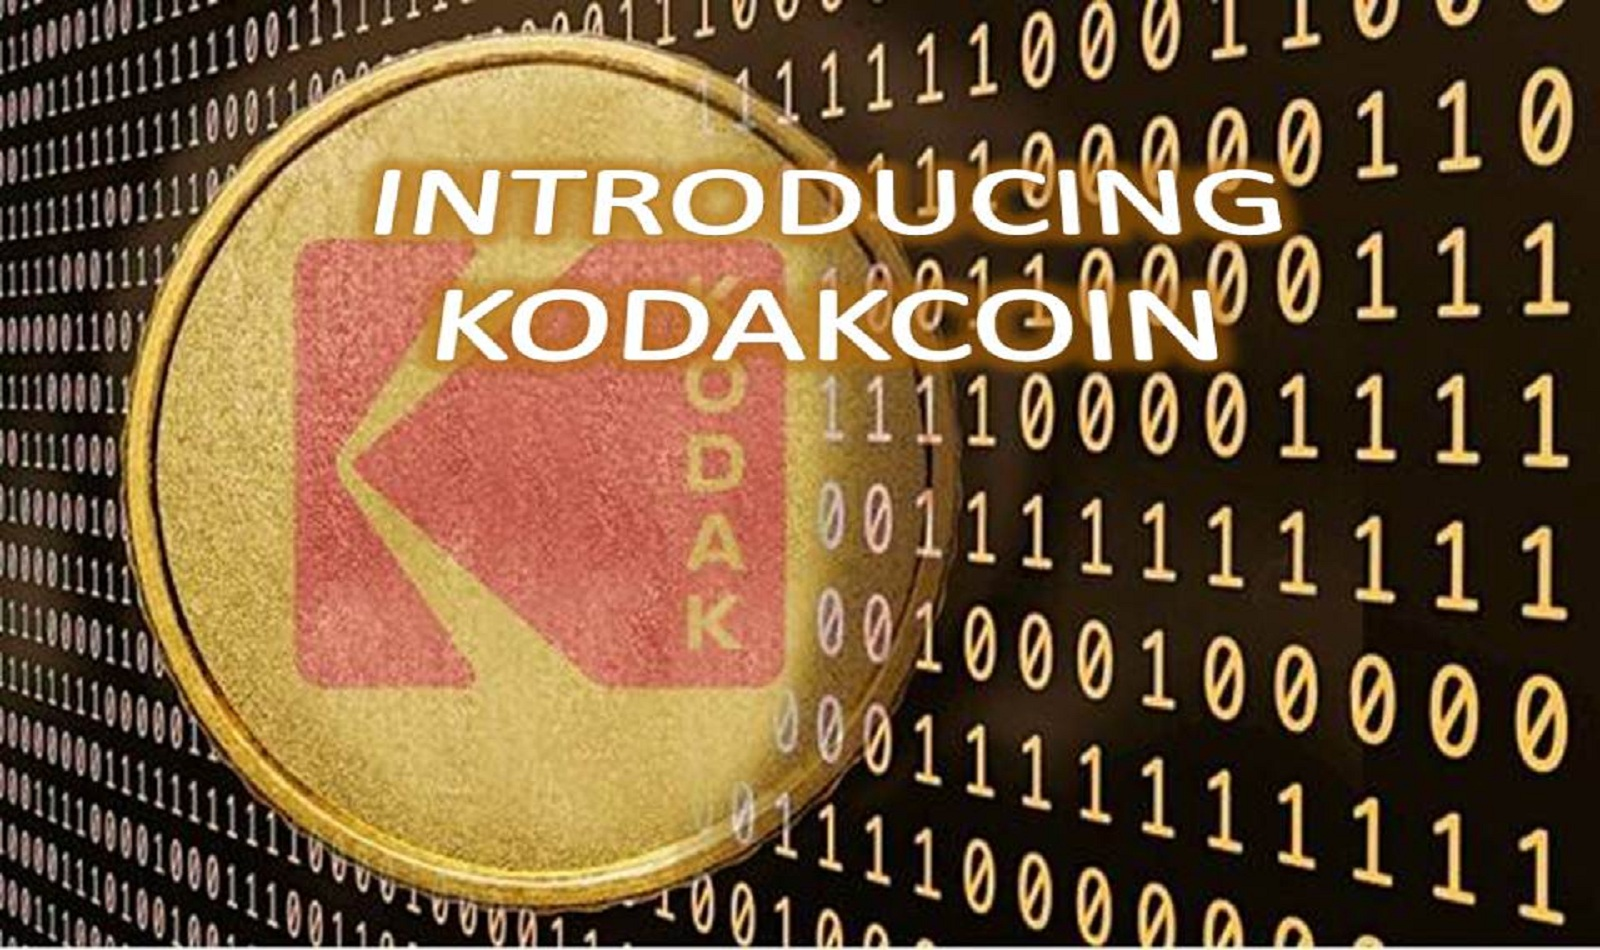 Kodak joins the cryptocurrency craze and photography may never be the same again